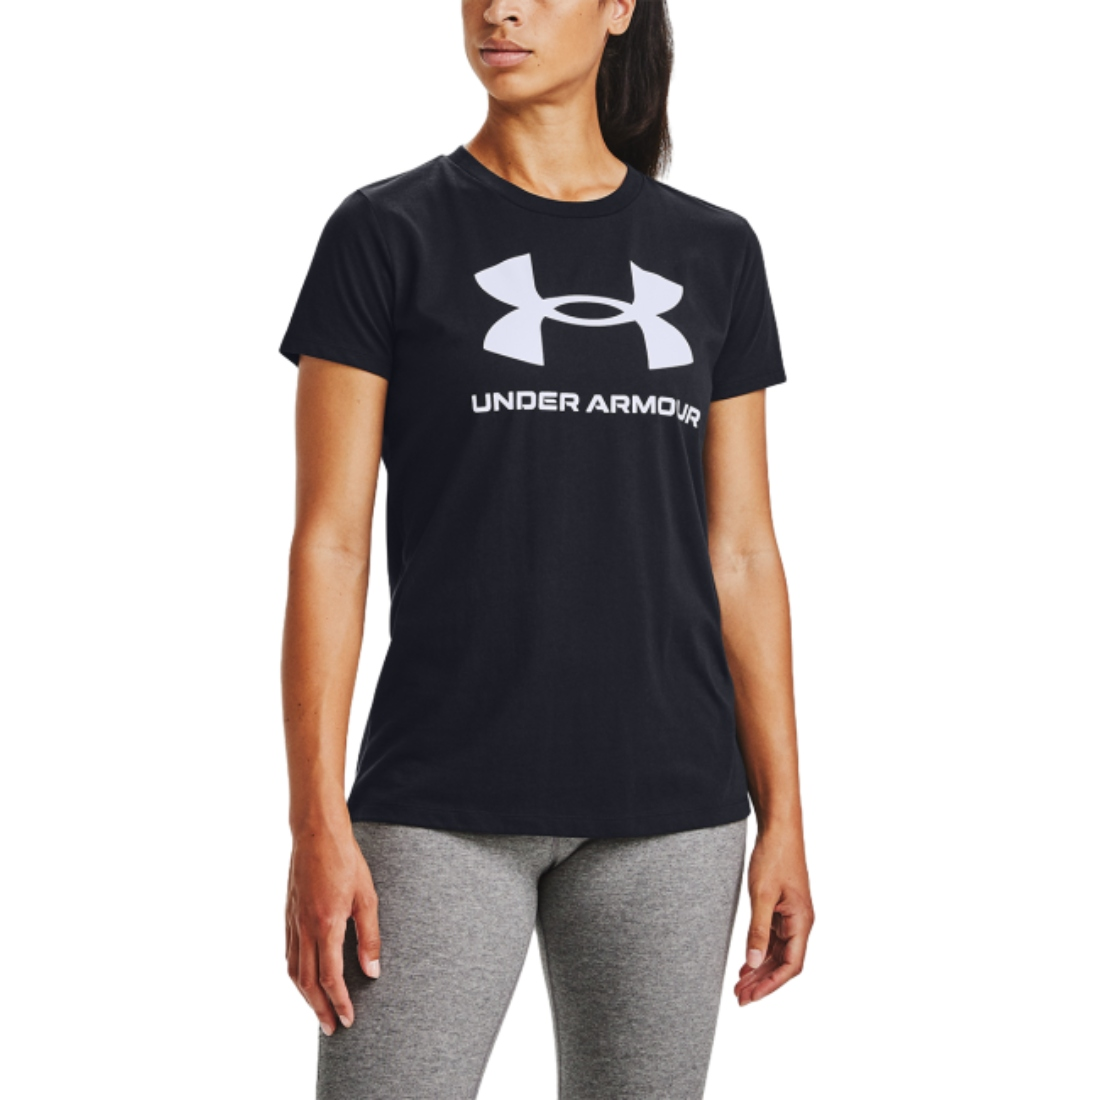 UNDER ARMOUR SPORTSTYLE GRAPHYC TEE BLACK